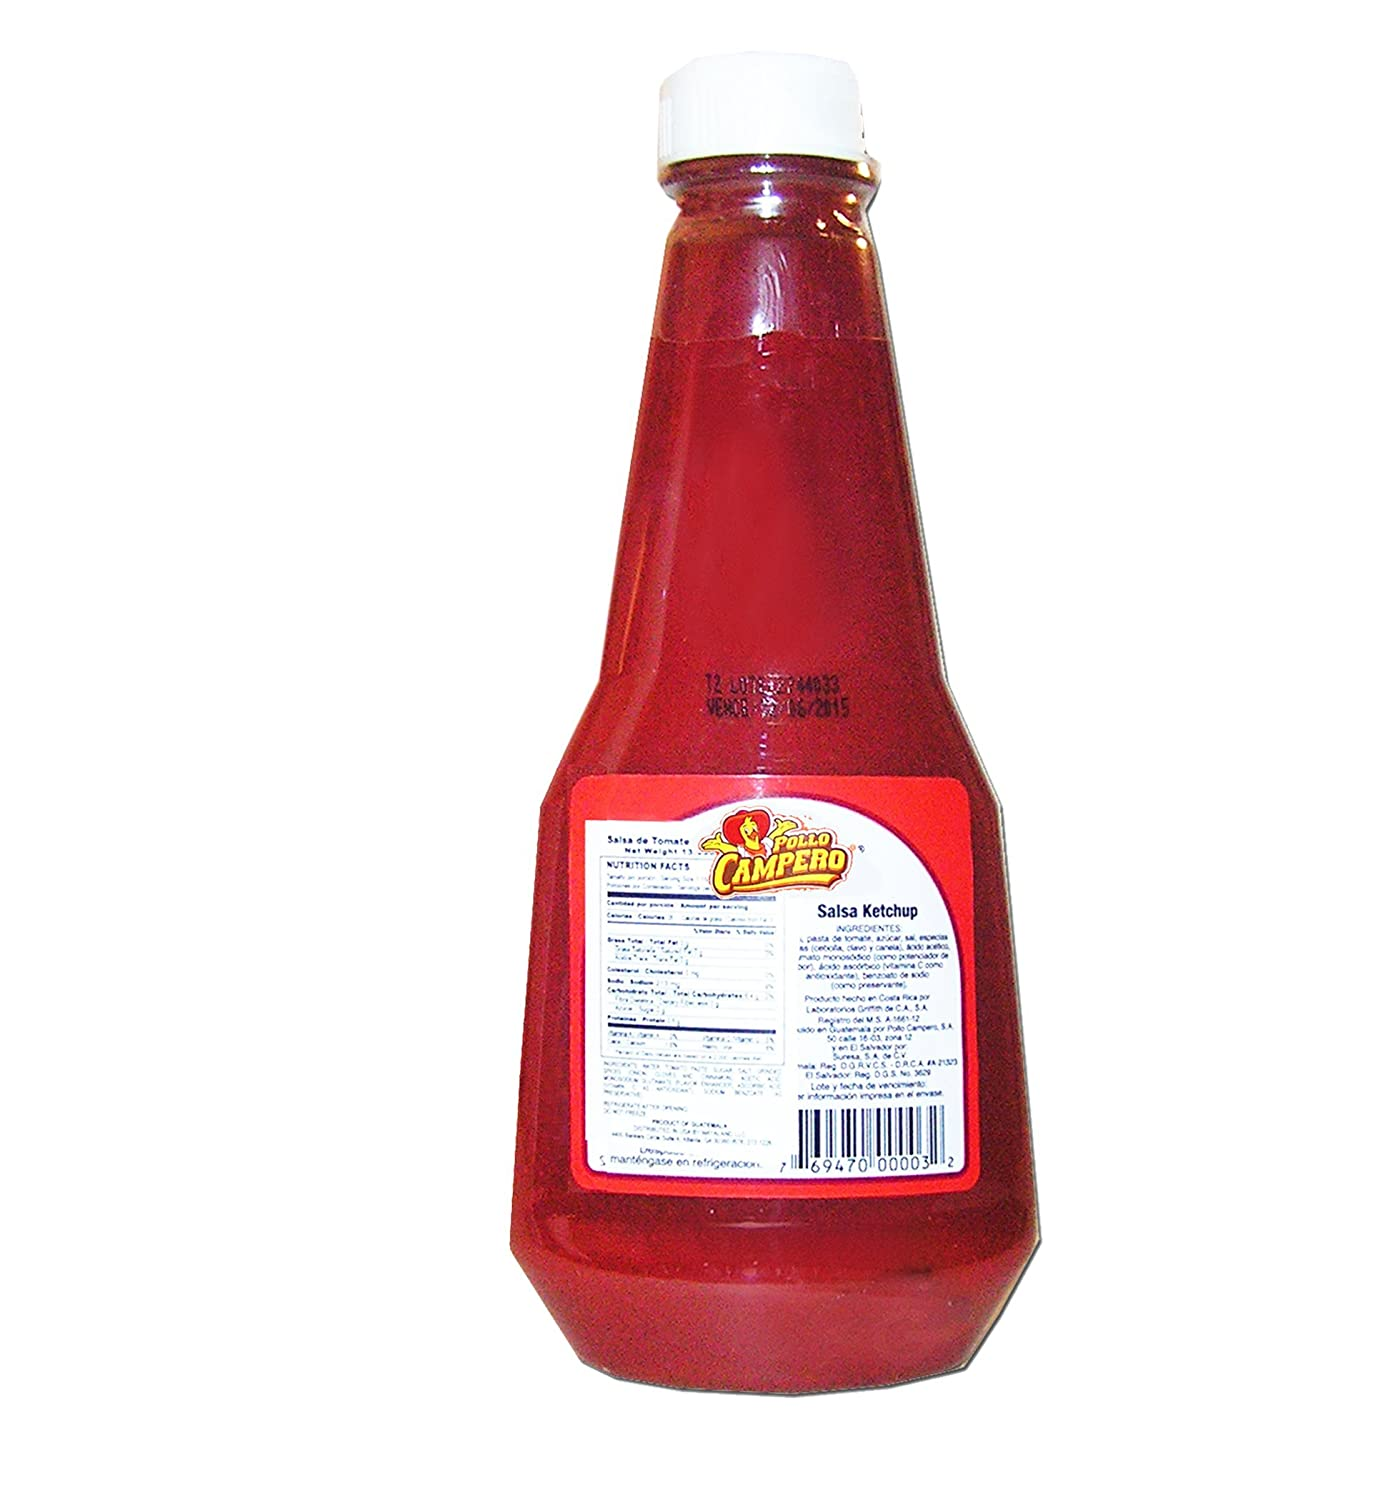 Amazon.com : Campero Ketchup 14 oz - Salsa De Tomate : Grocery & Gourmet Food